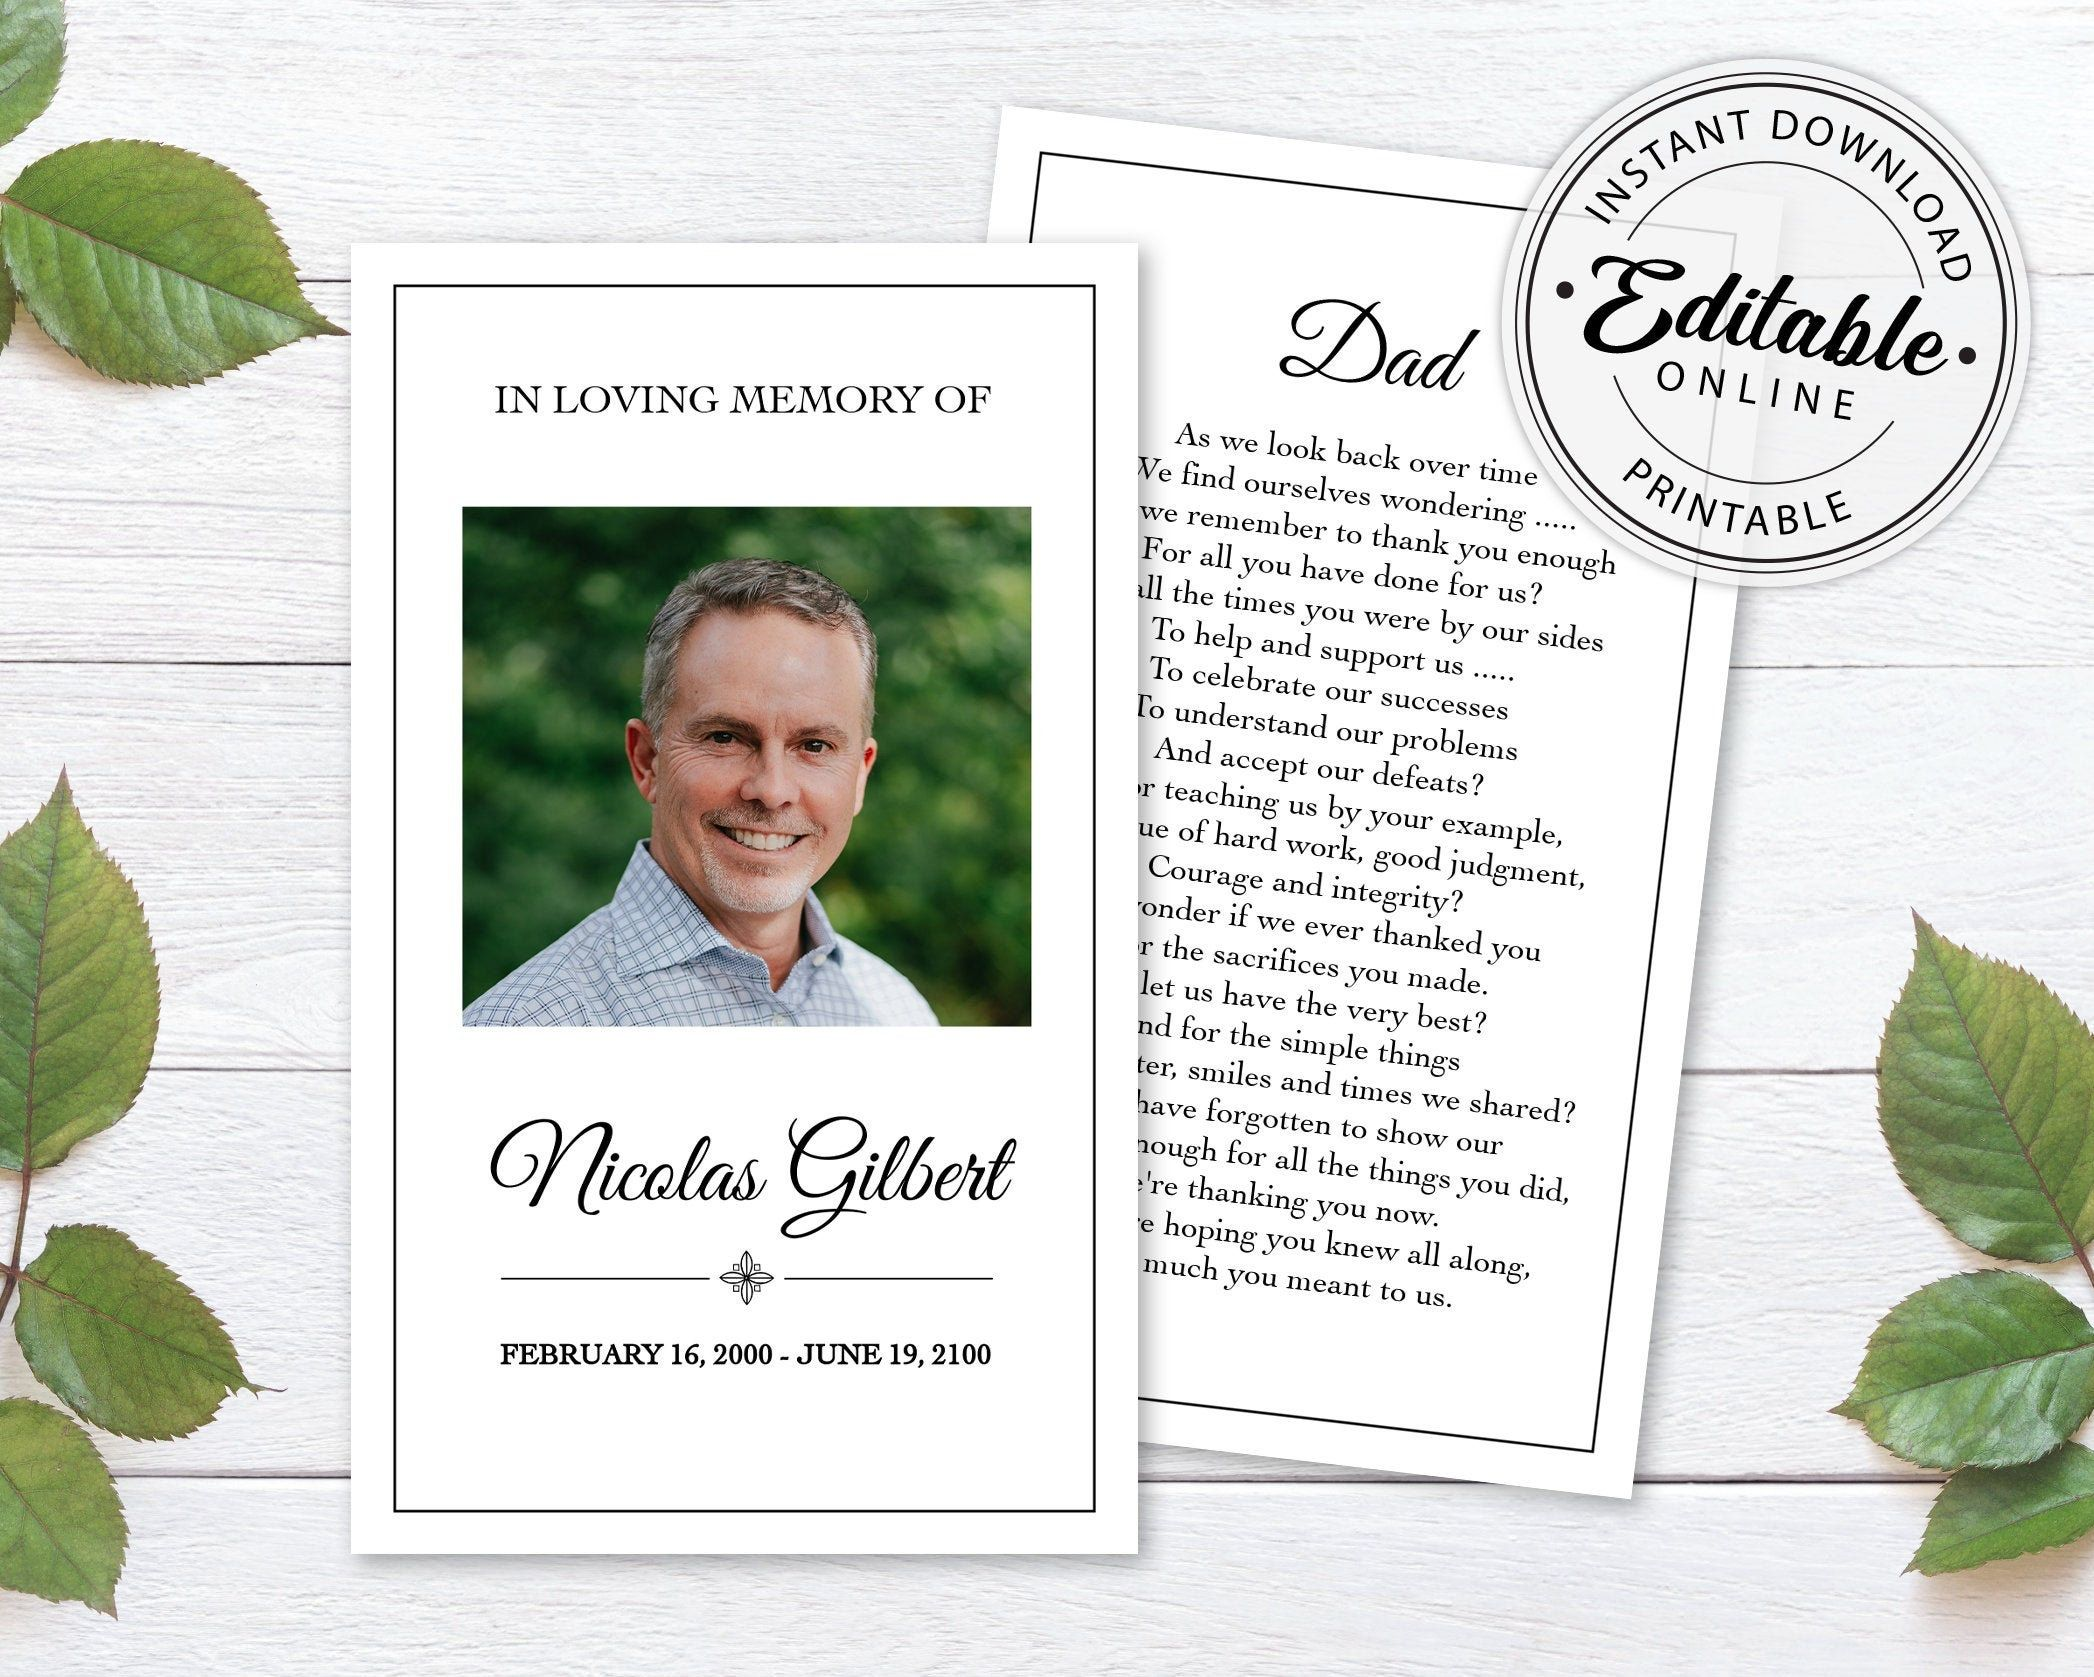 Editable Funeral Prayer Card Template Printable Memorial Prayer Card Template Funeral Prayer Card Cath Prayer Cards Funeral Prayers Prayer Cards For Funeral